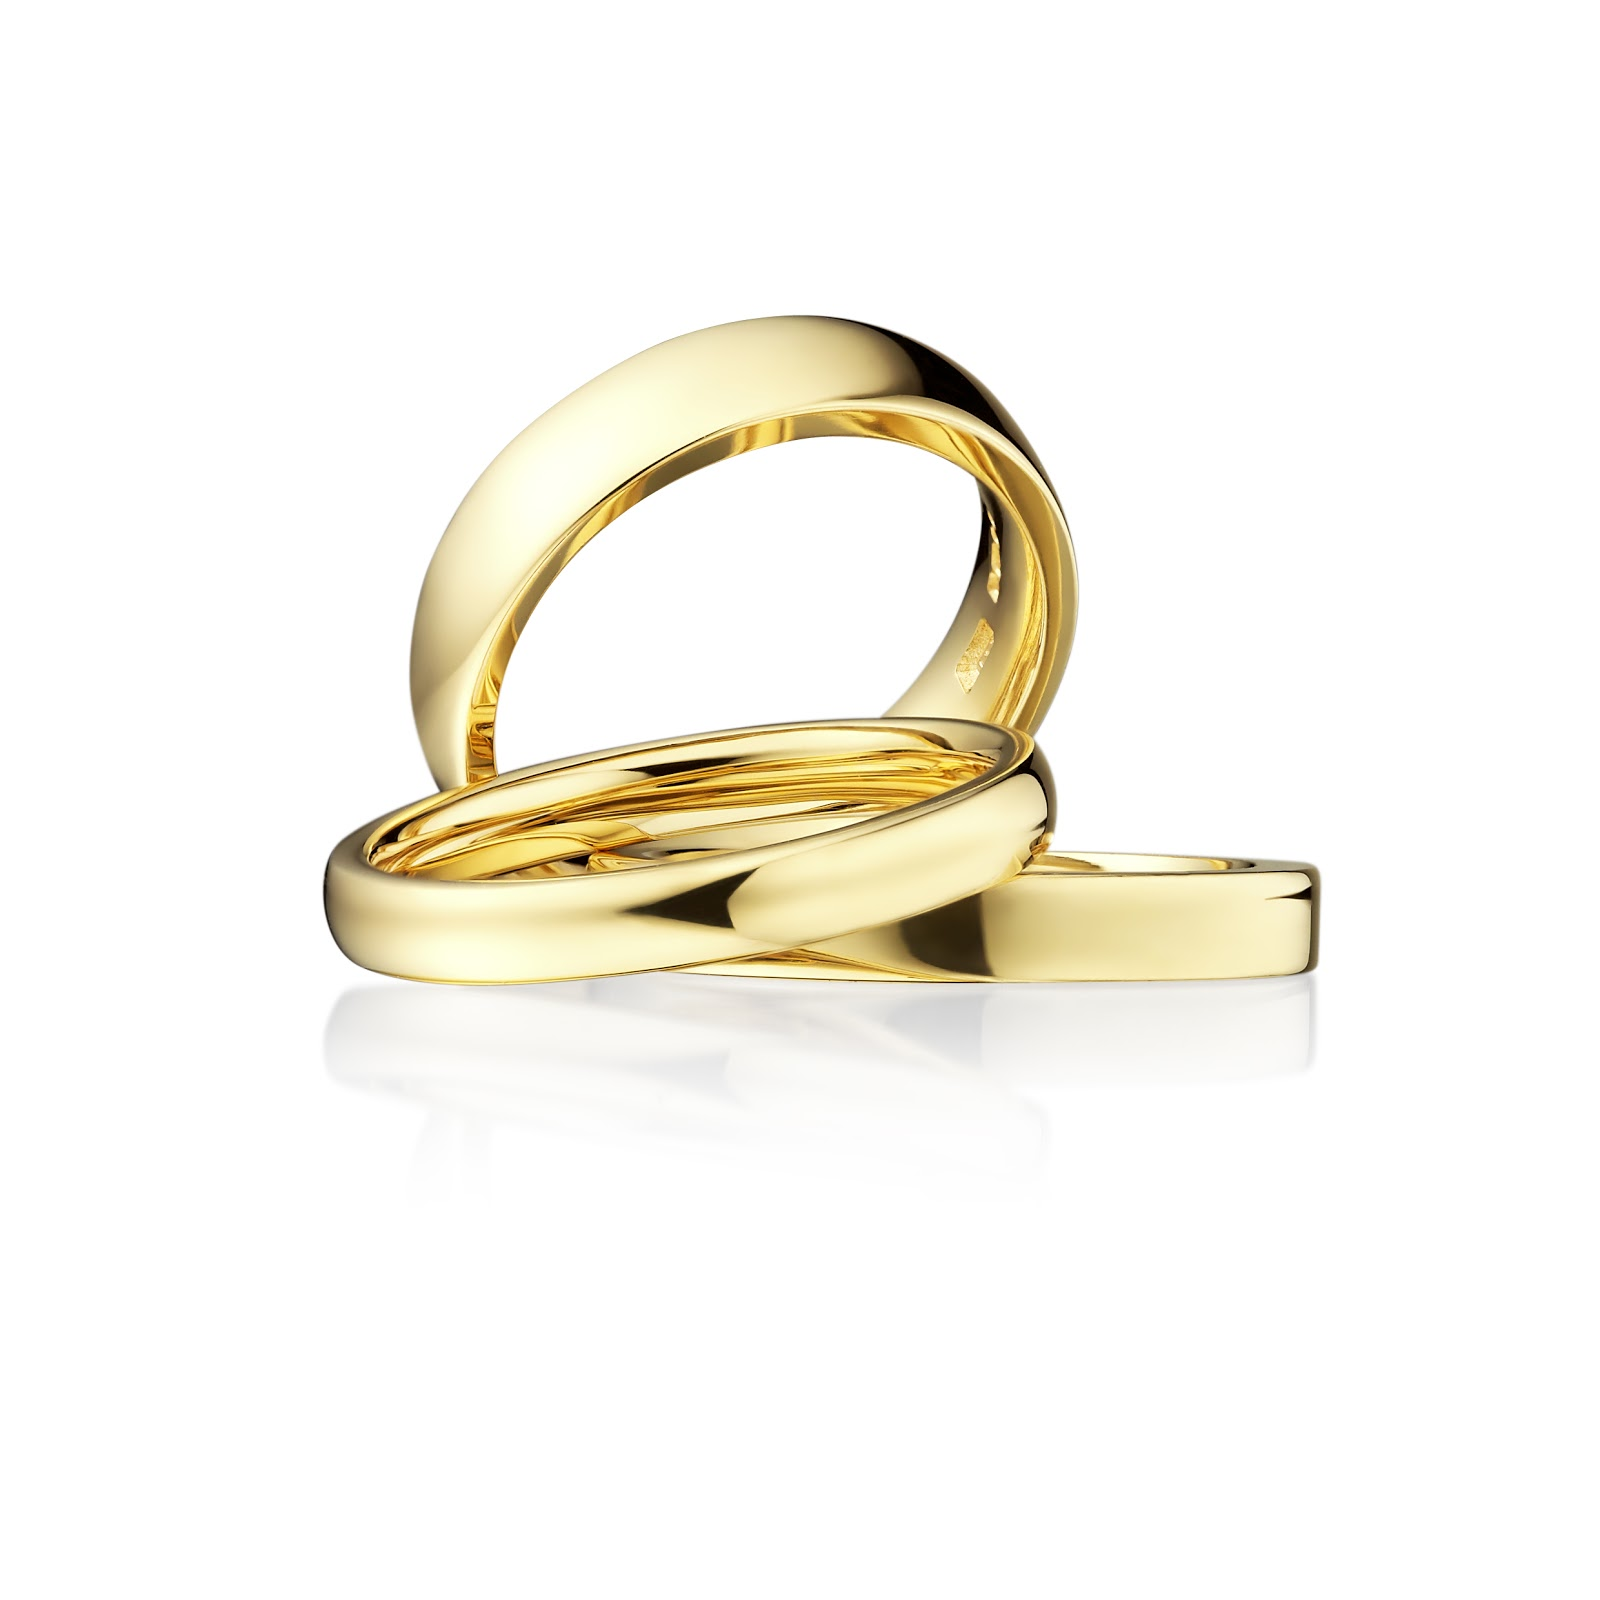 gold wedding rings: gold wedding rings sri lanka